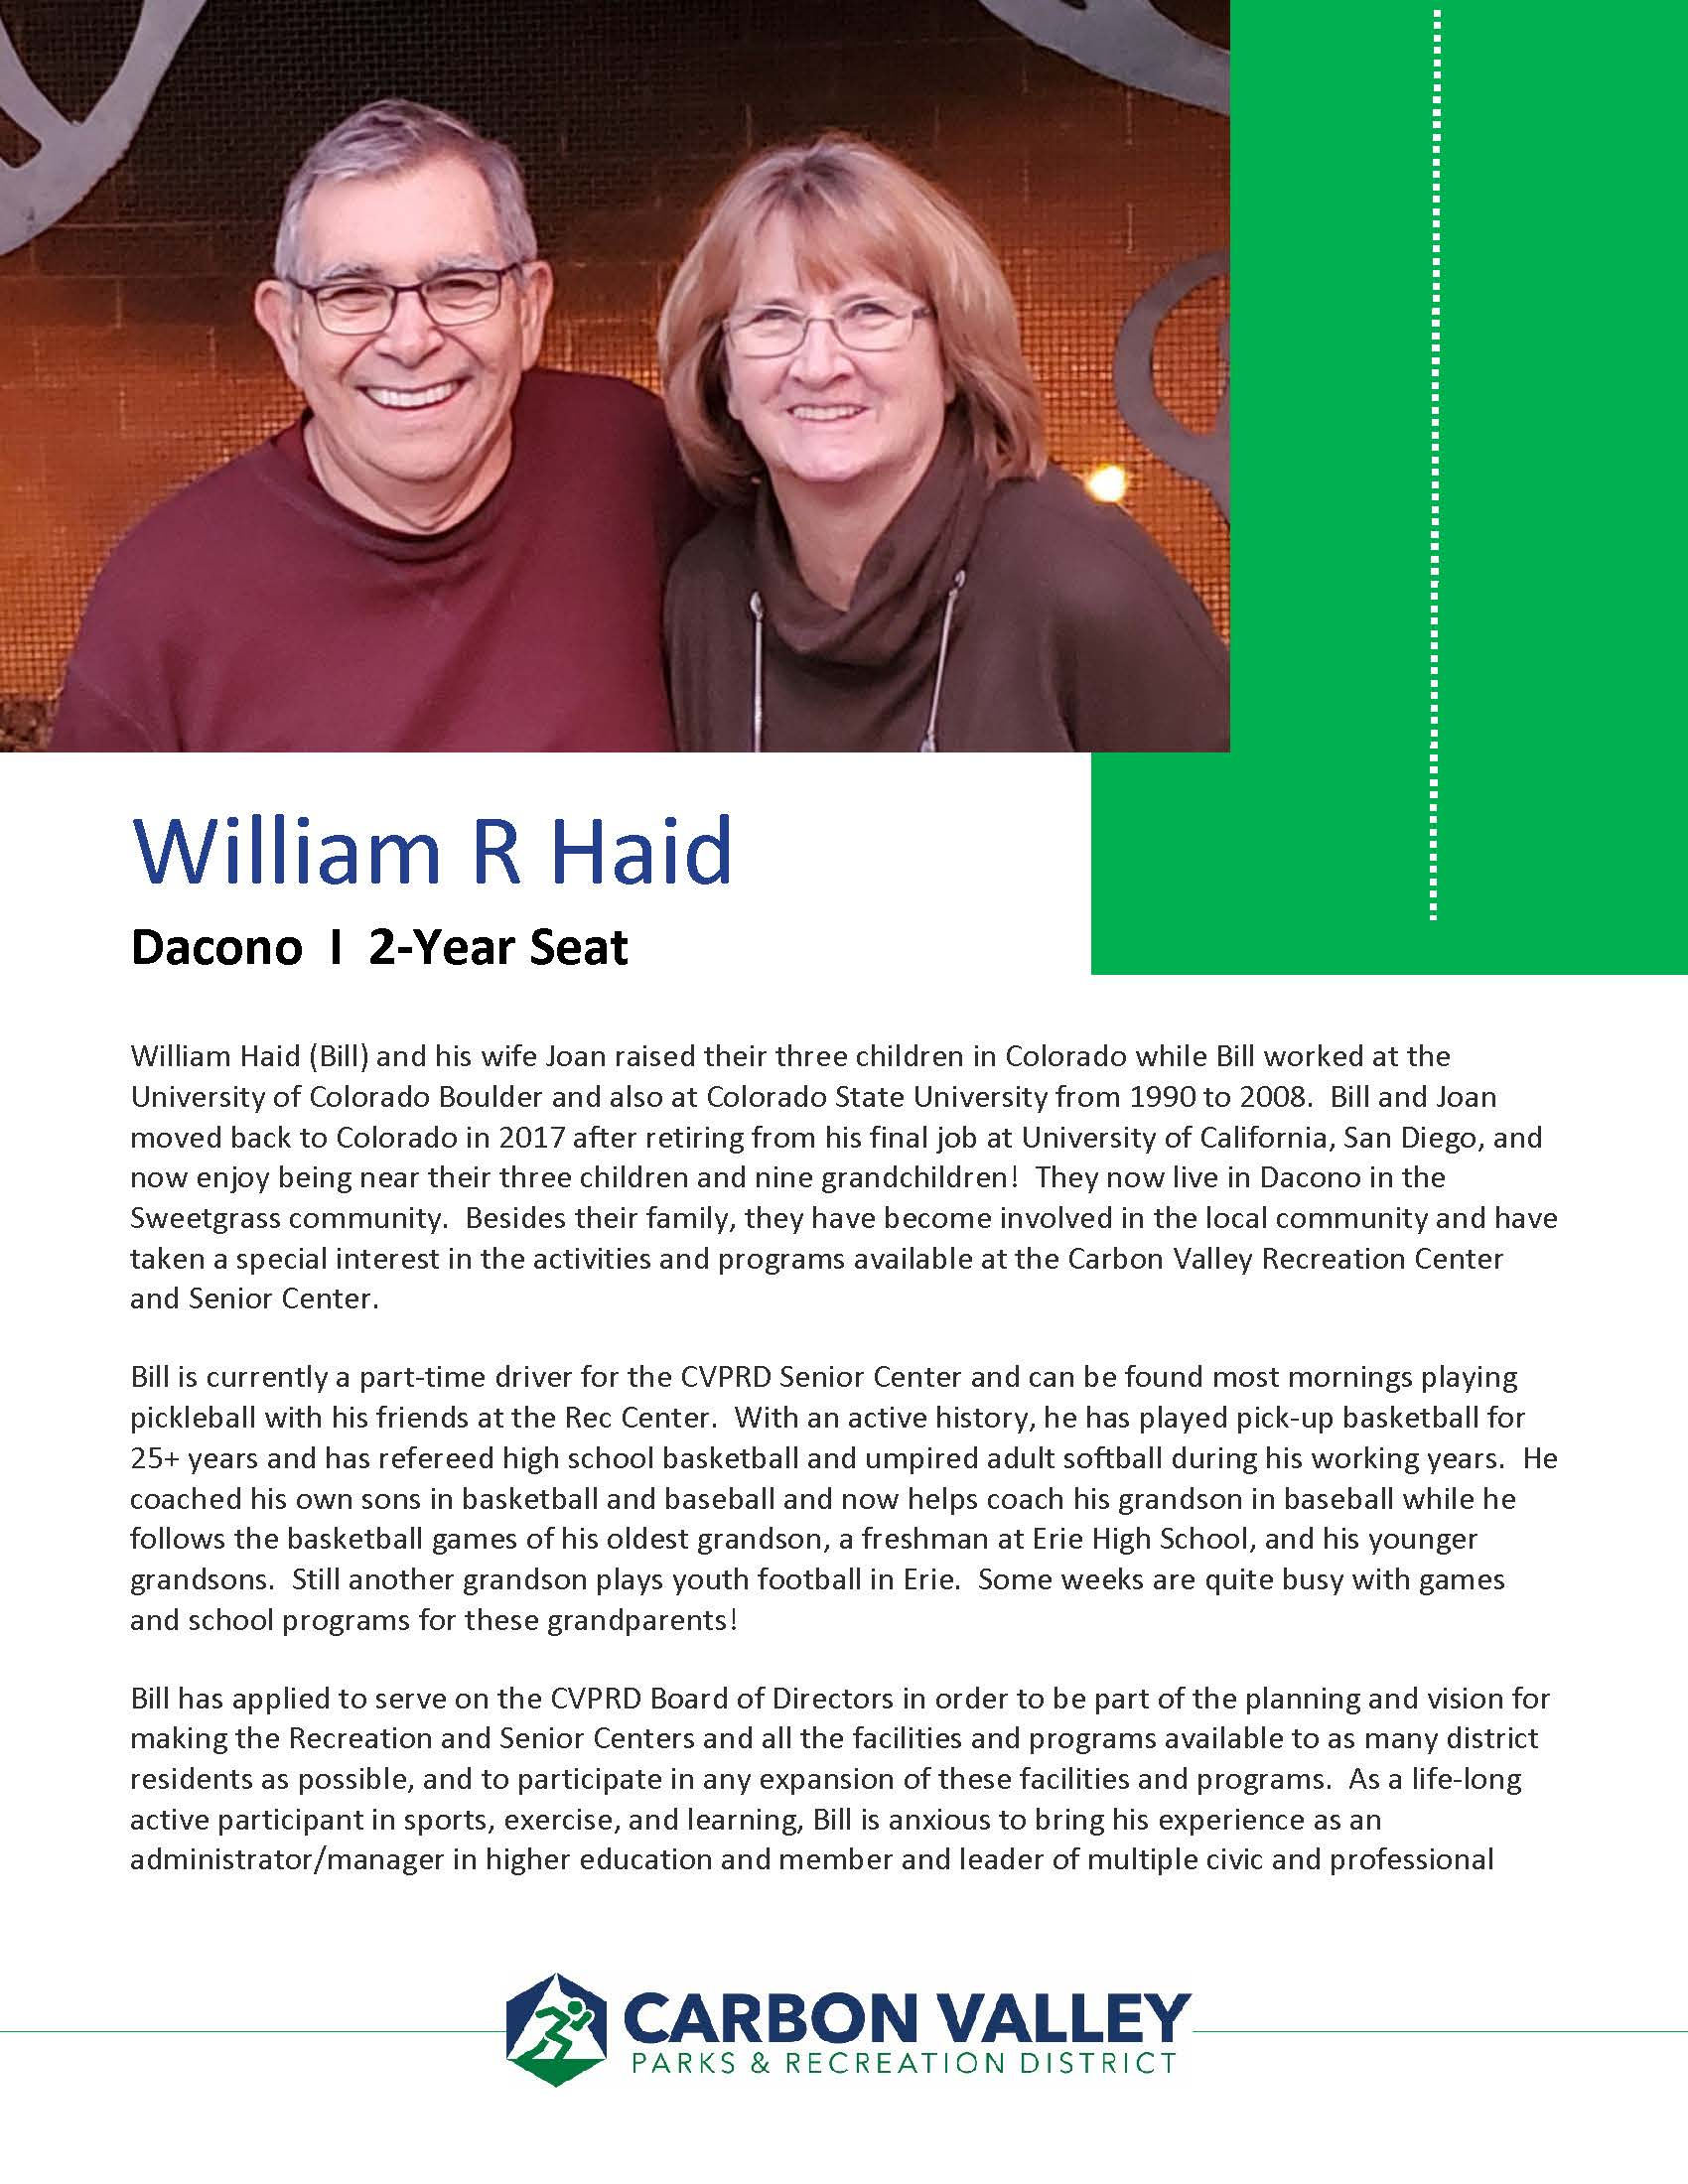 William Haid